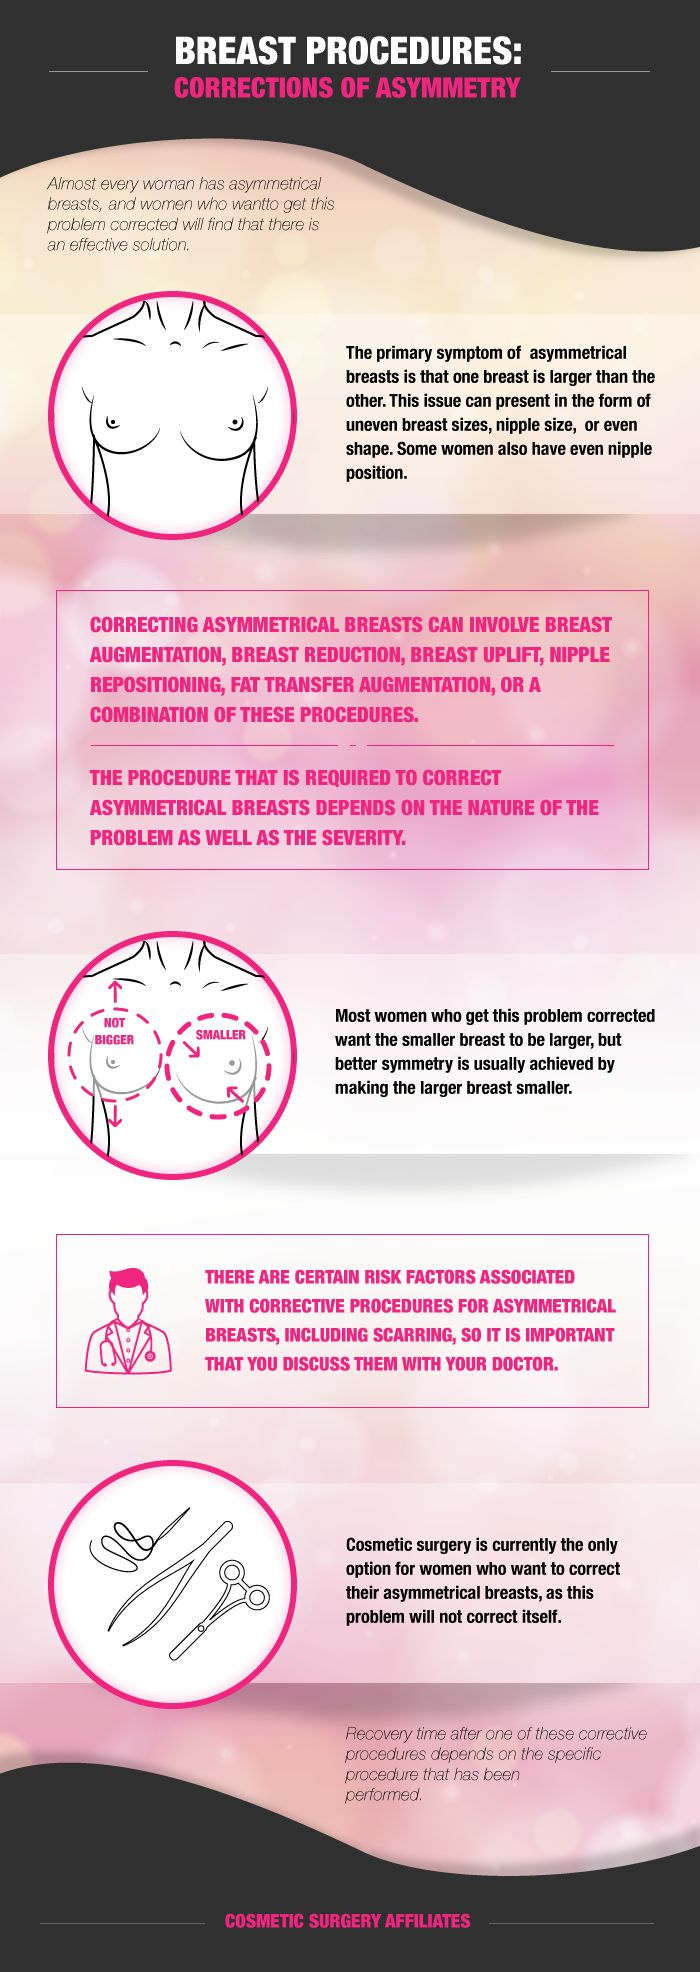 Statistics of breast asymmetry